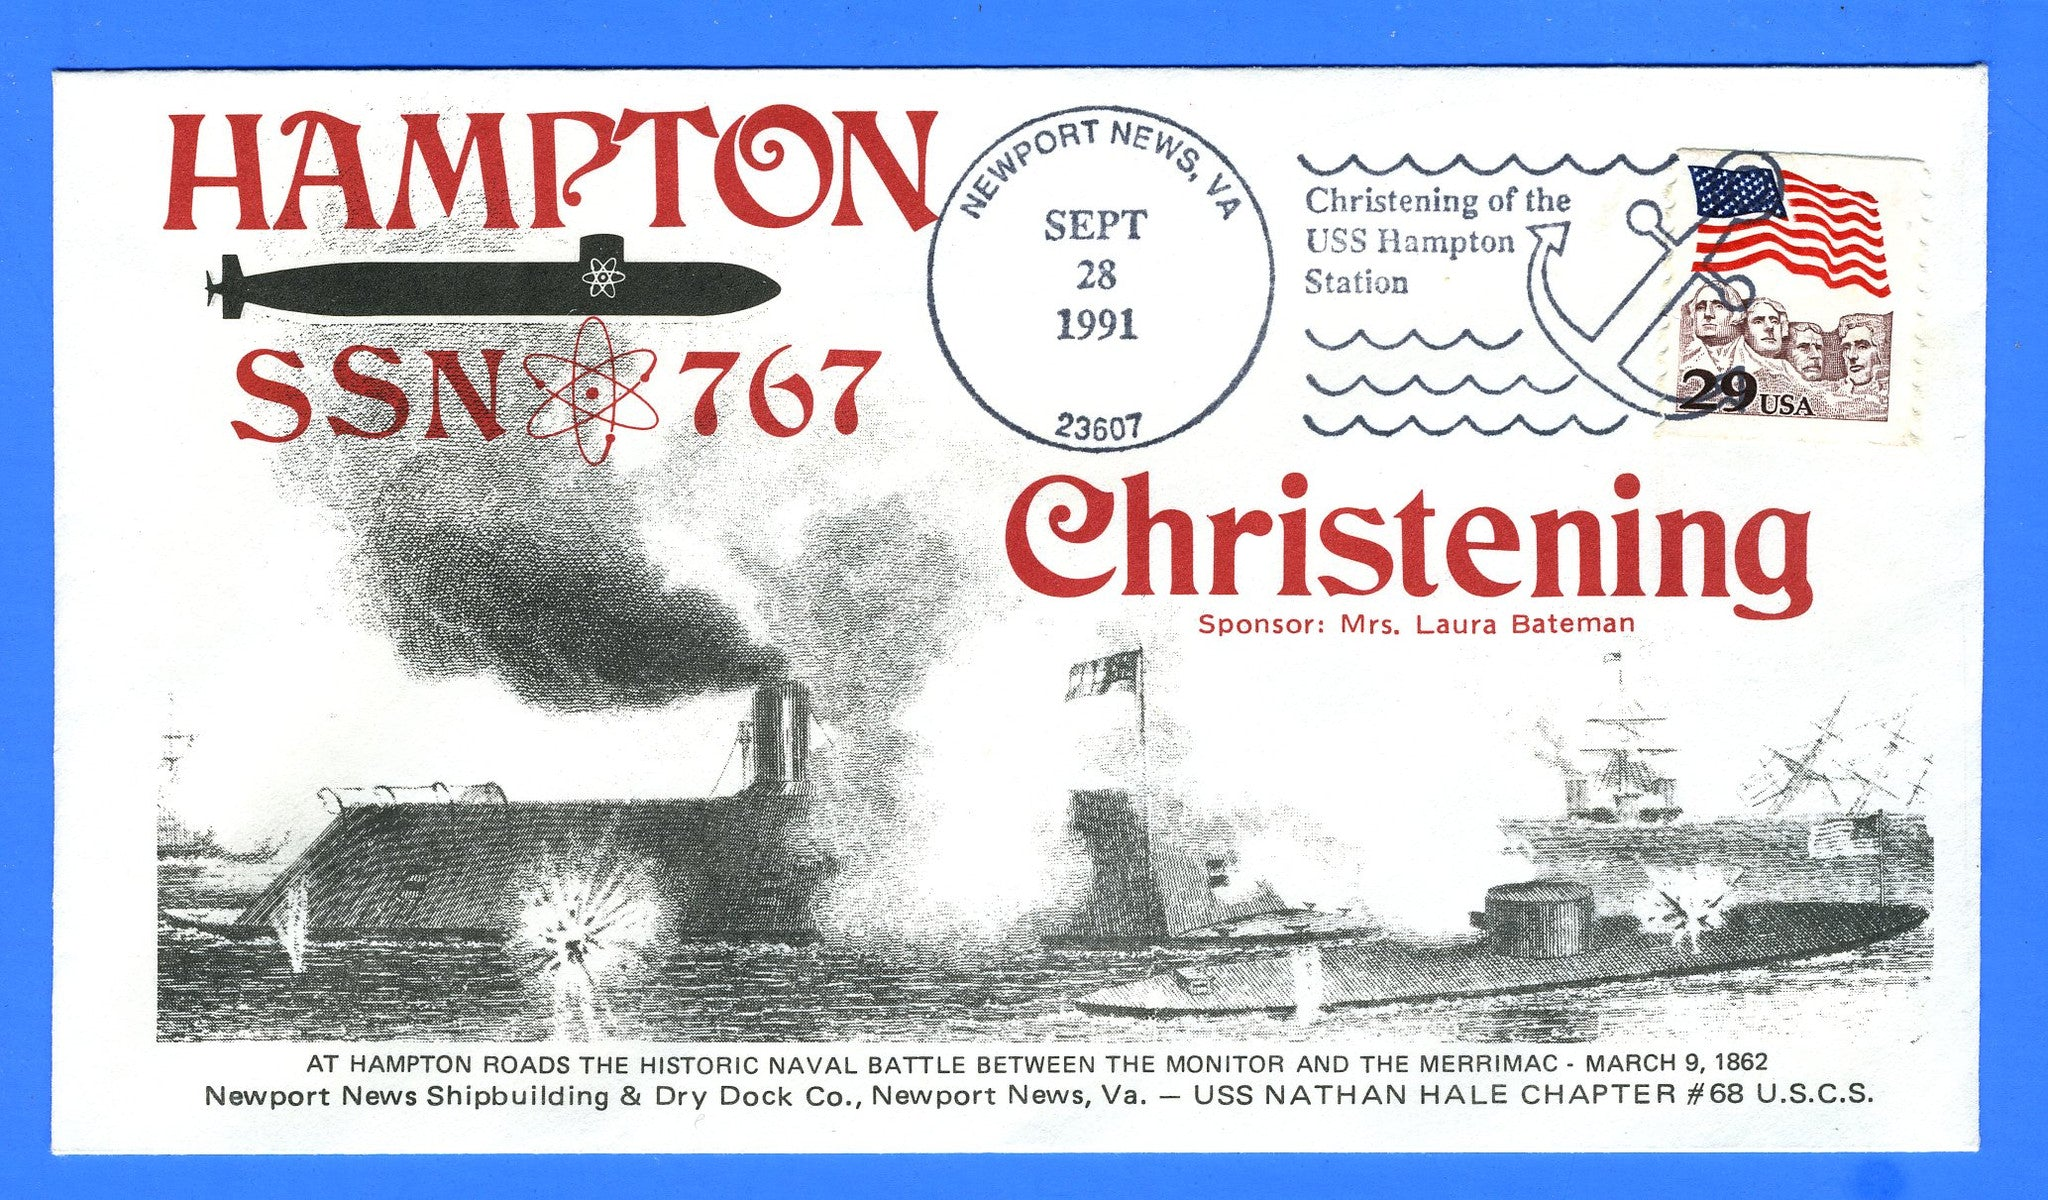 USS Hampton SSN-767 Christening September 28, 1991 - Cachet Maker USCS Chapter 68 USS Nathan Hale